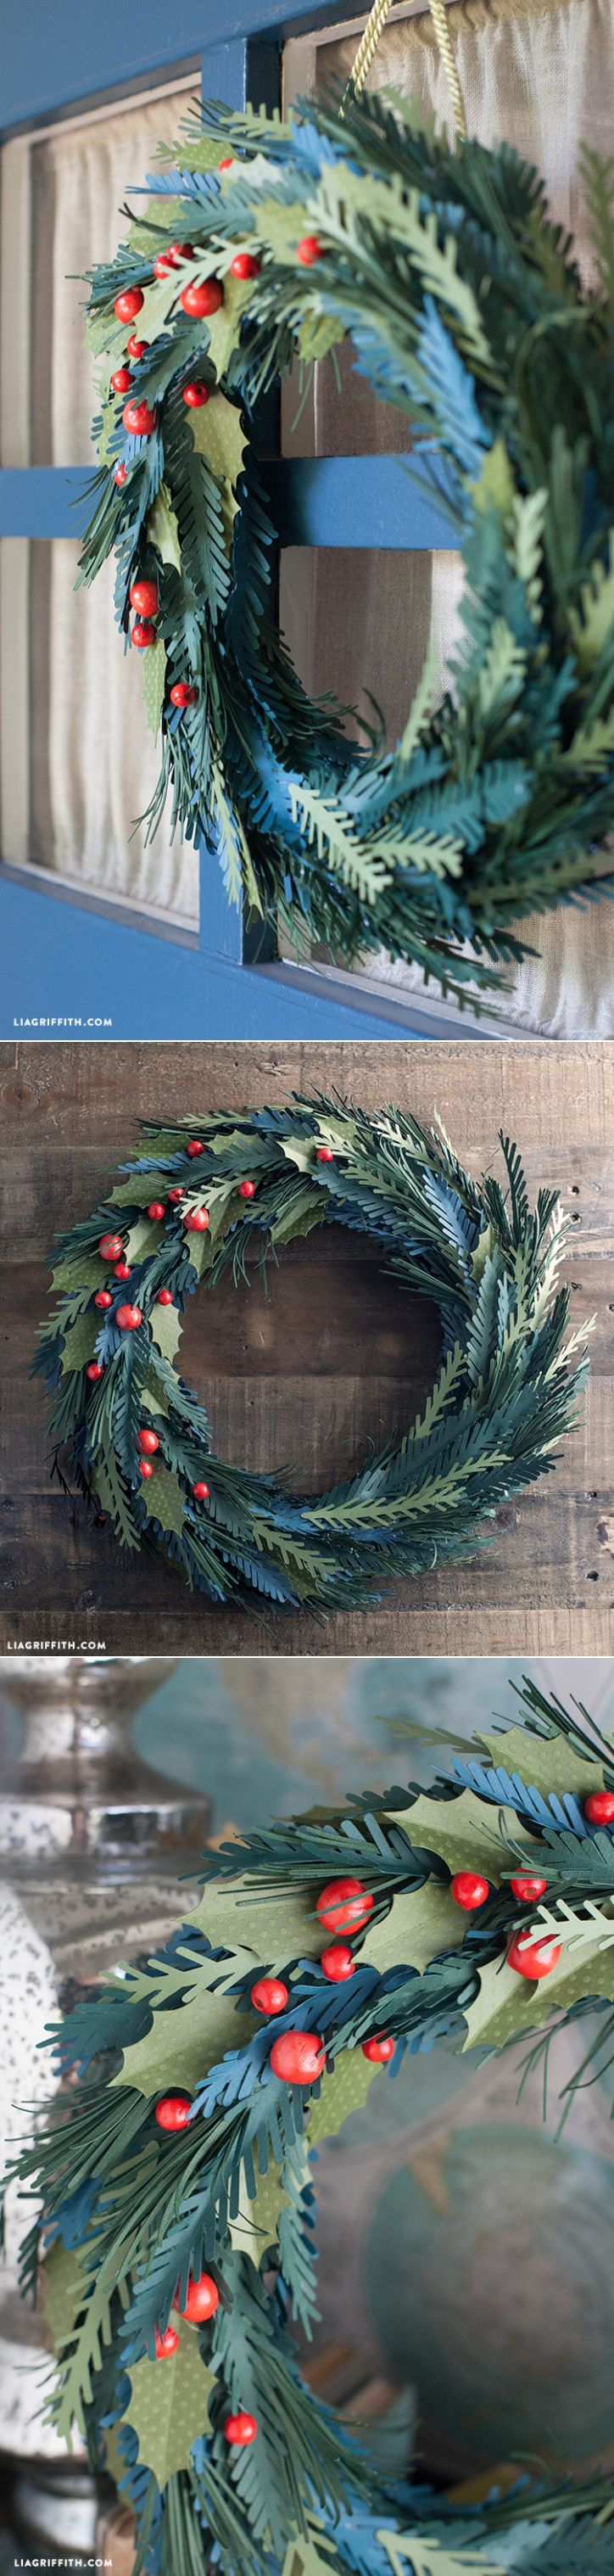 #Paperwreath #DIYwreath #paperflower #DIYdecorating www.LiaGriffith.com: